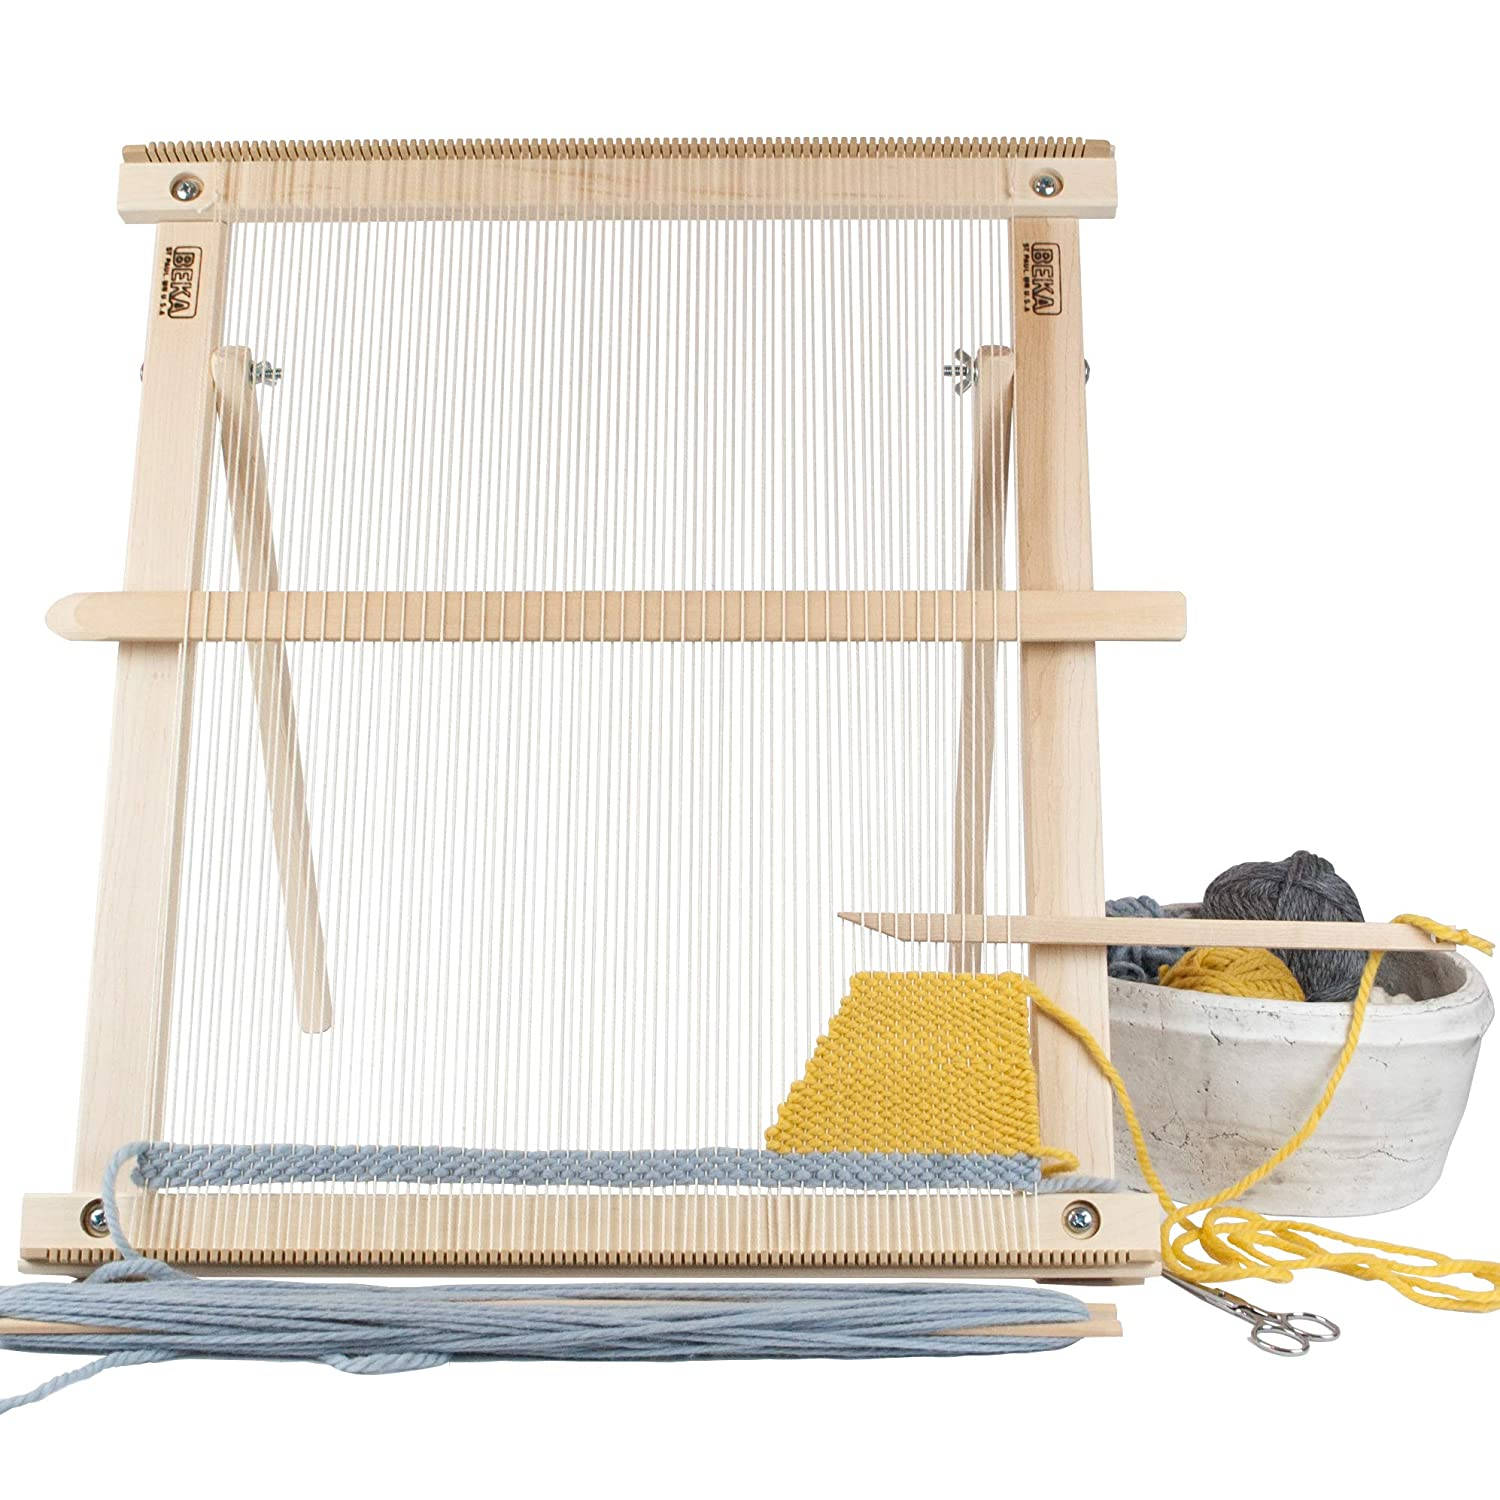 Amazoncom Beka 20 Weaving Frame Loom With Stand The Deluxe